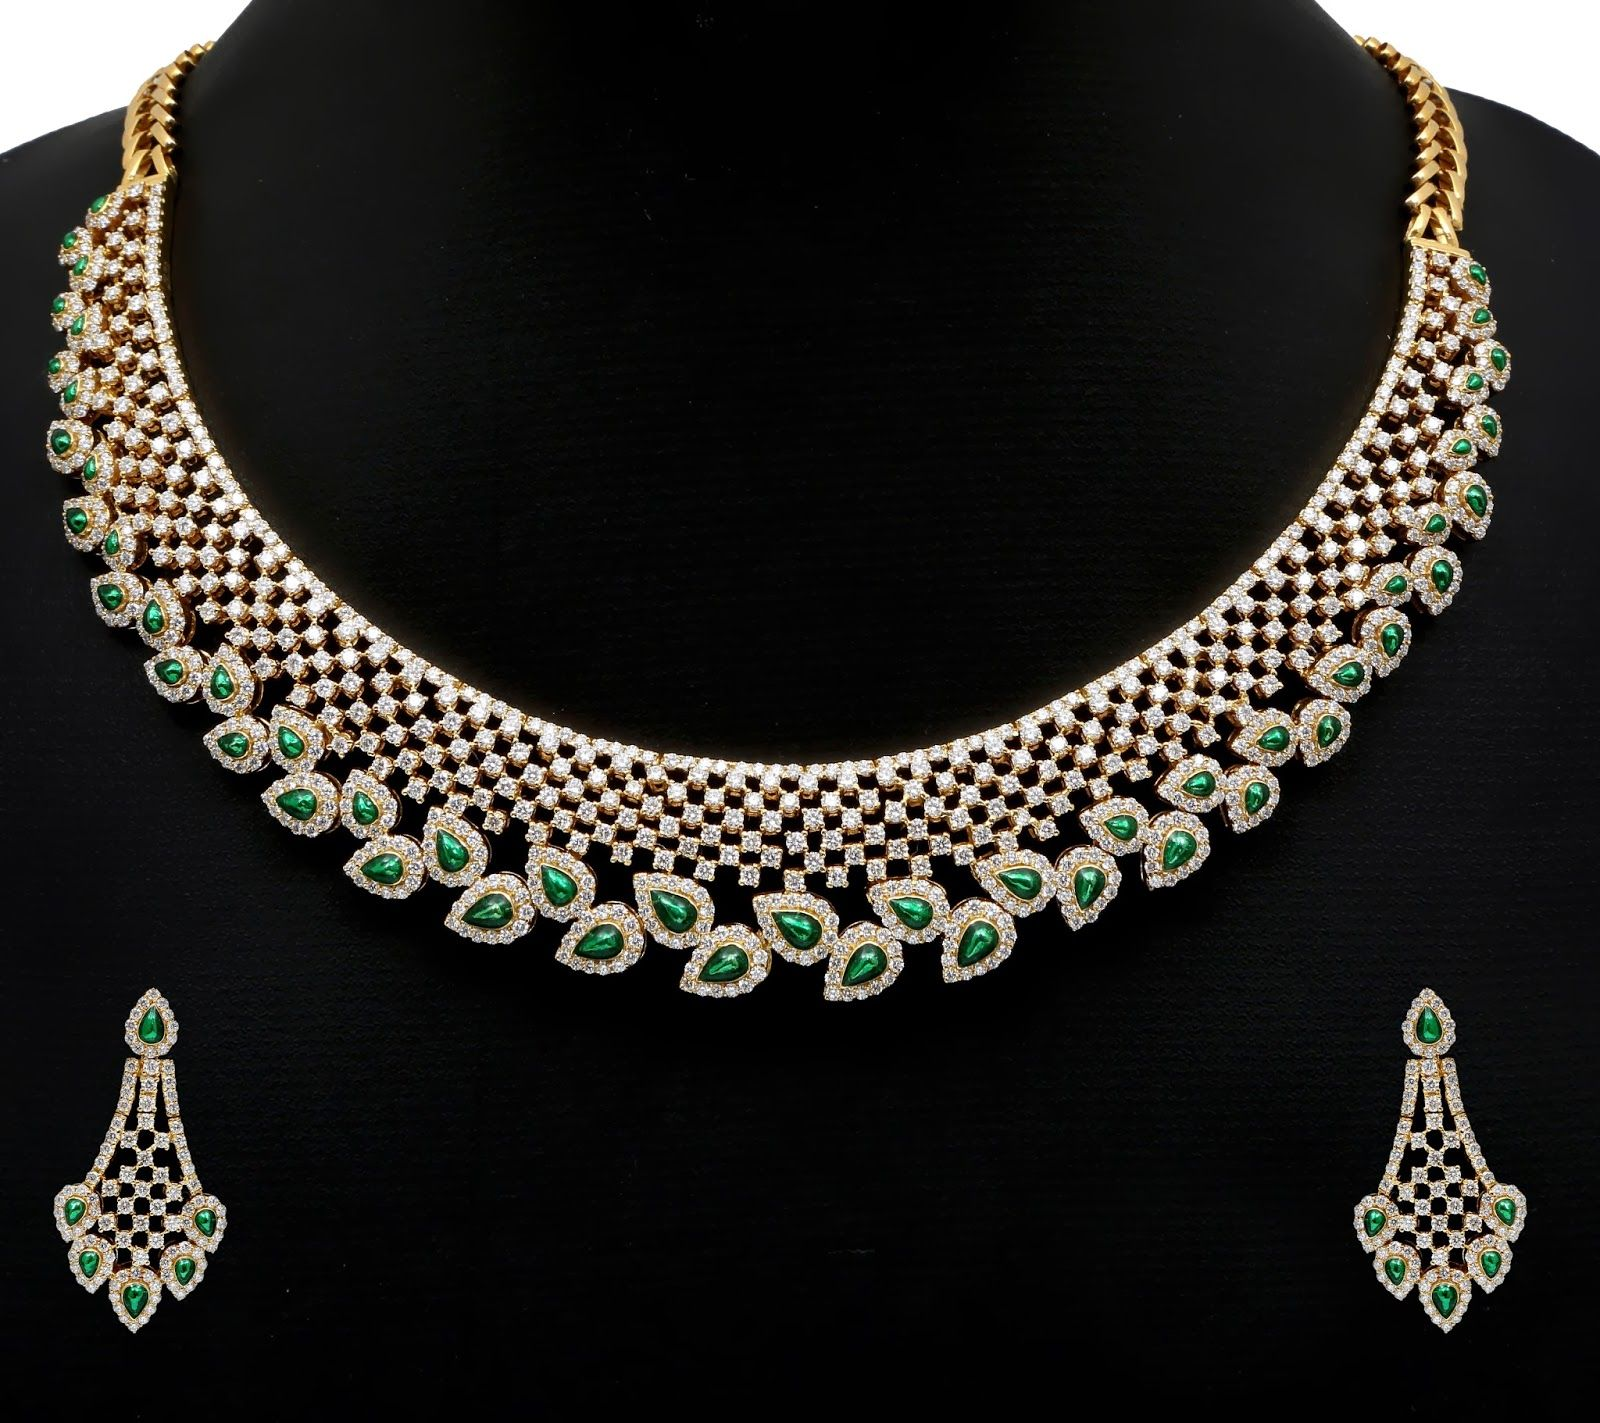 15 Most Beautiful Diamond Necklace That Every Woman Should